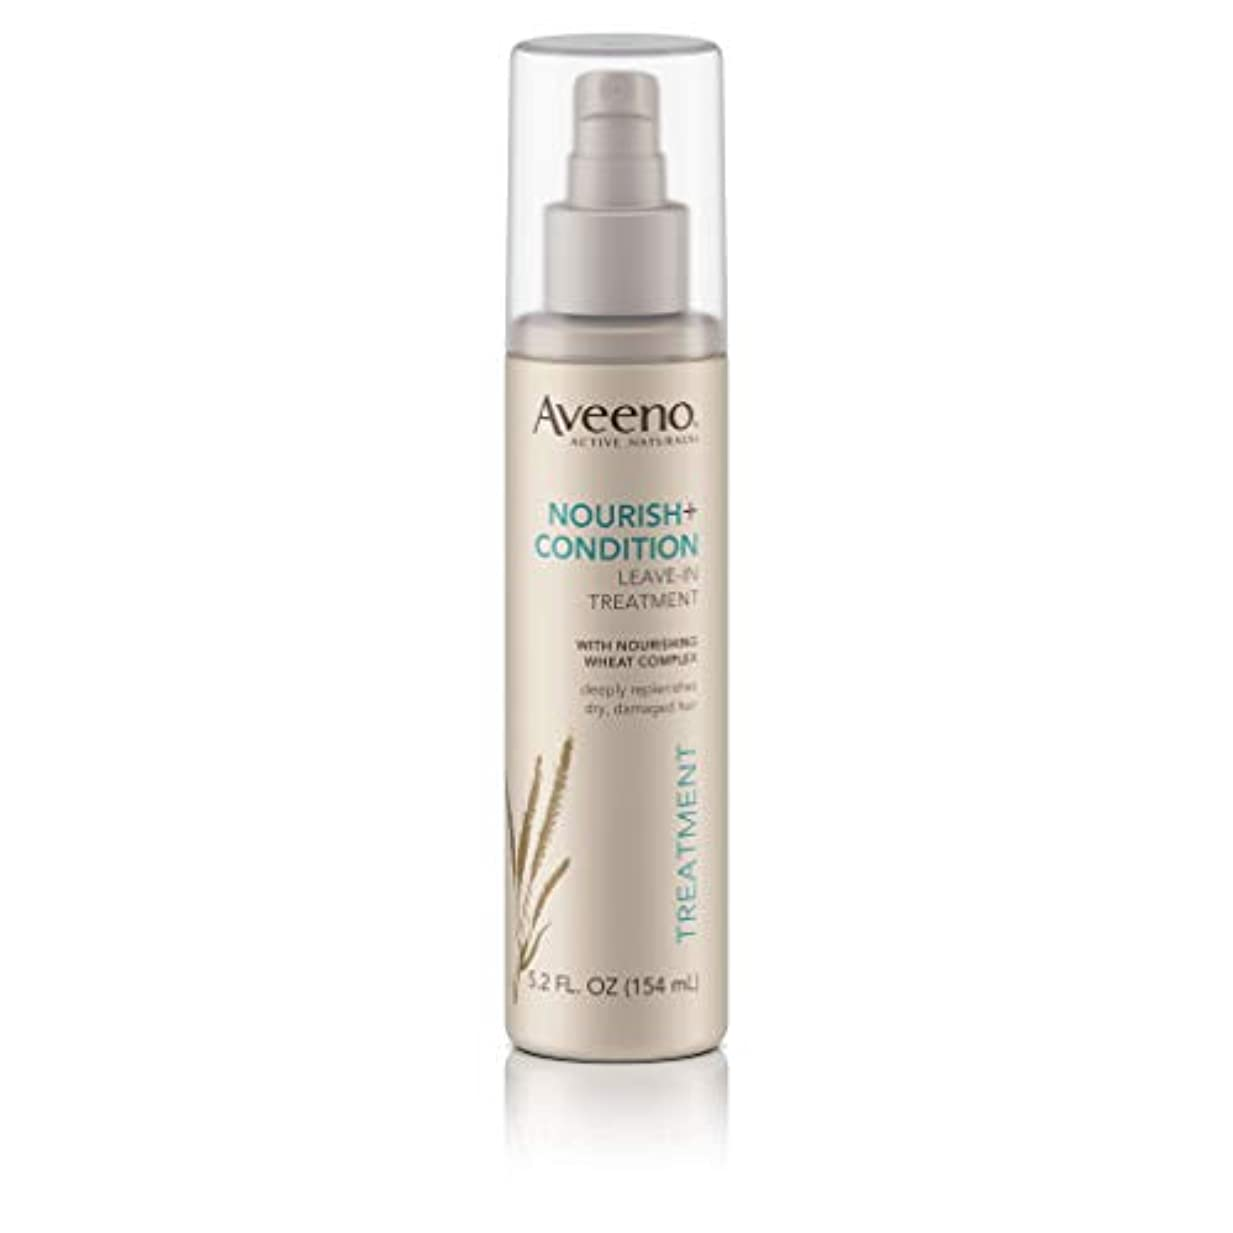 Aveeno Nourish+ Condition Treatment Spray 150g (並行輸入品)